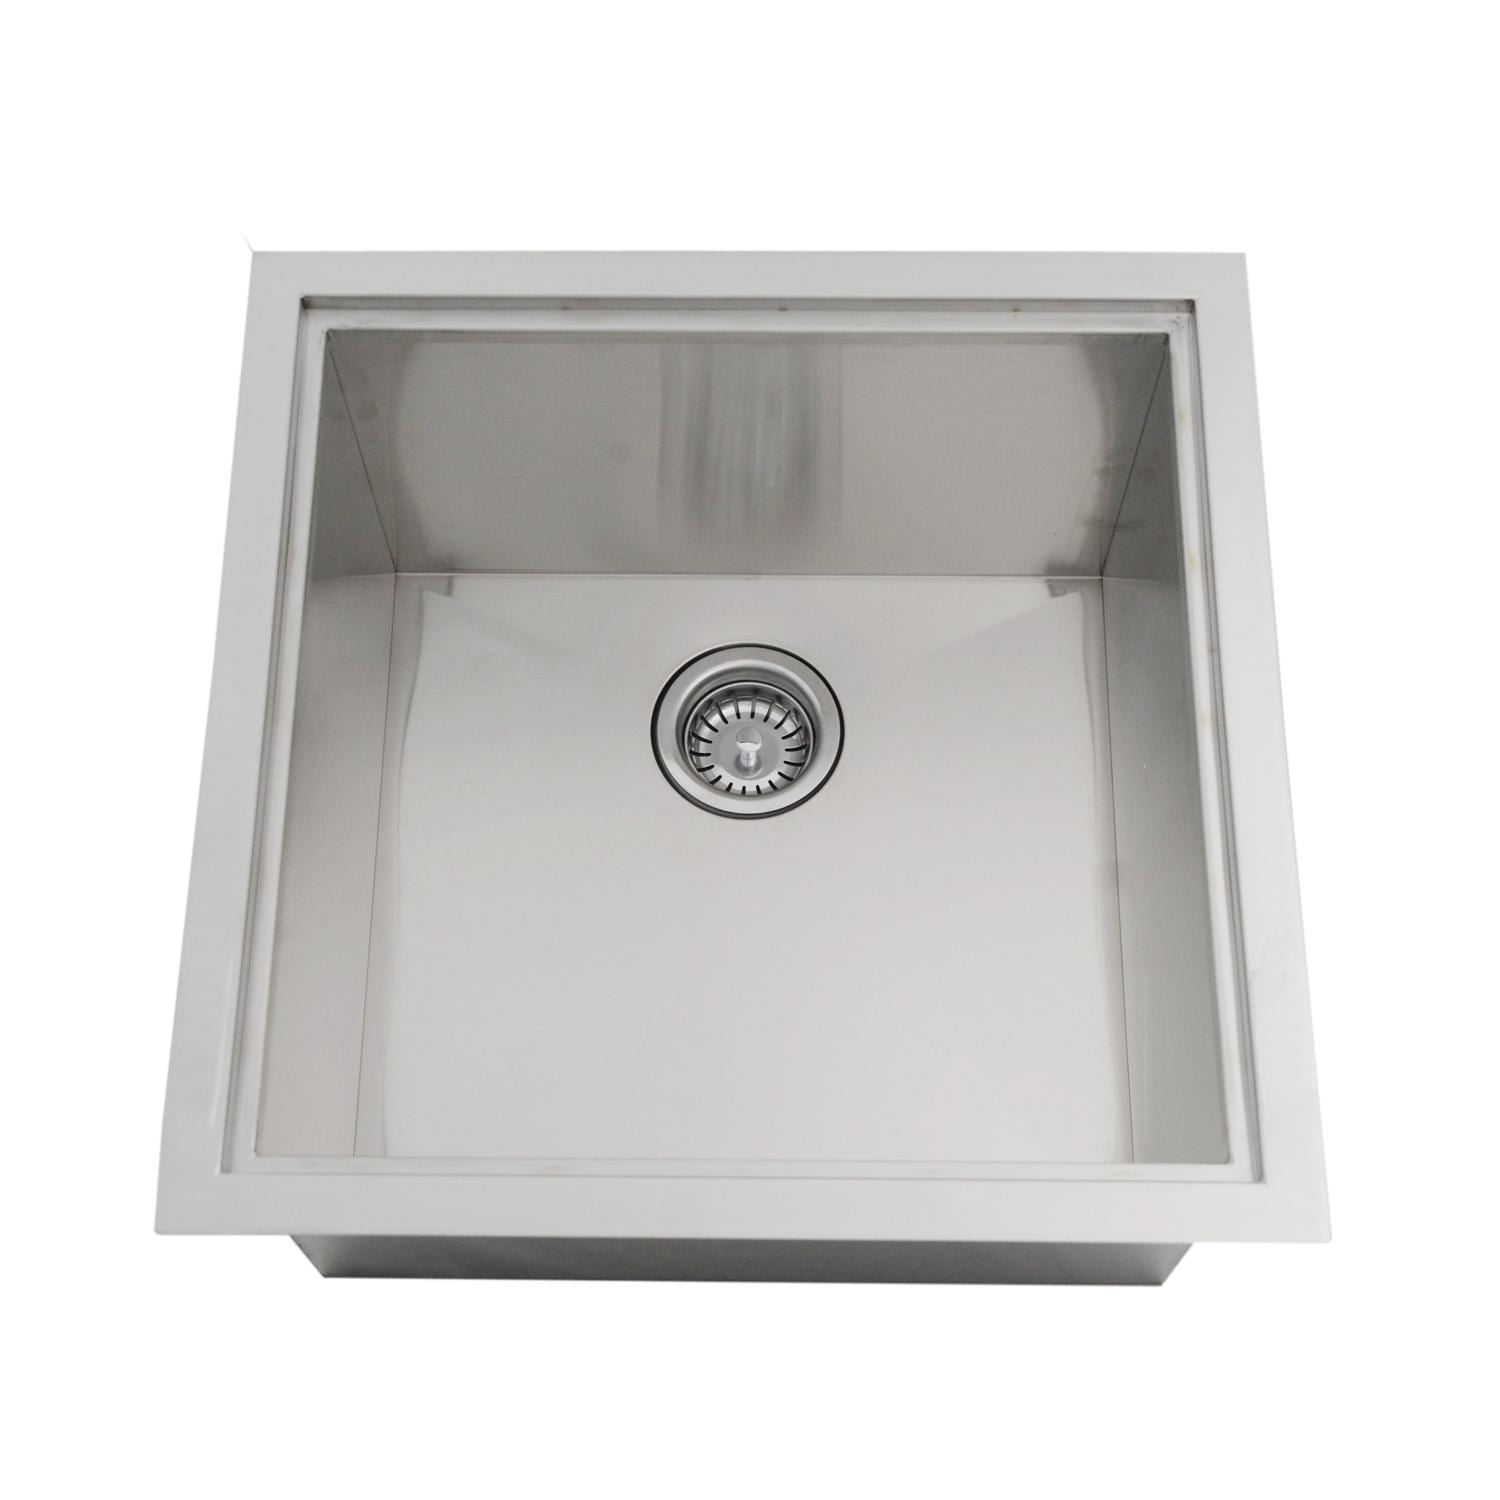 Sunstone Dual Mount 20 Inch Outdoor Rated Single Basin Sink With Cover    B SK20 : BBQGuys